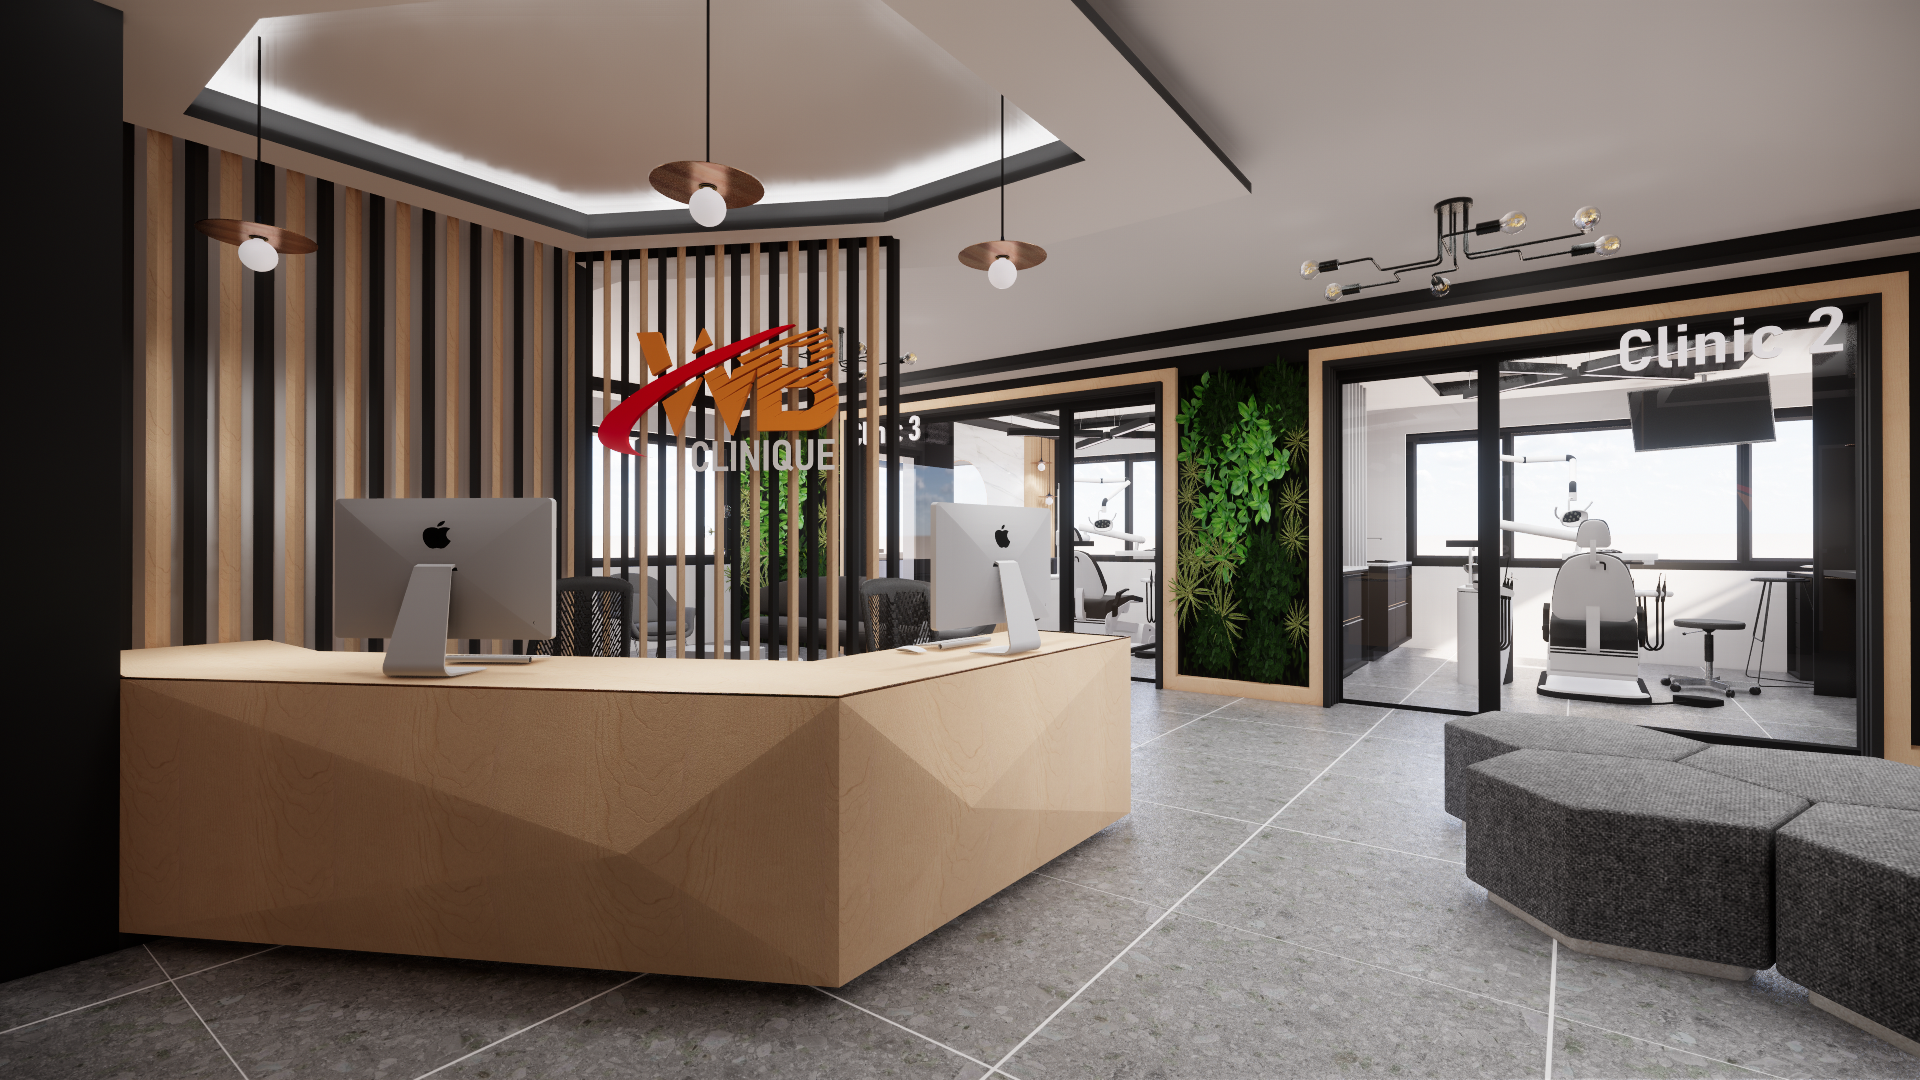 wdclinic_render_07.png